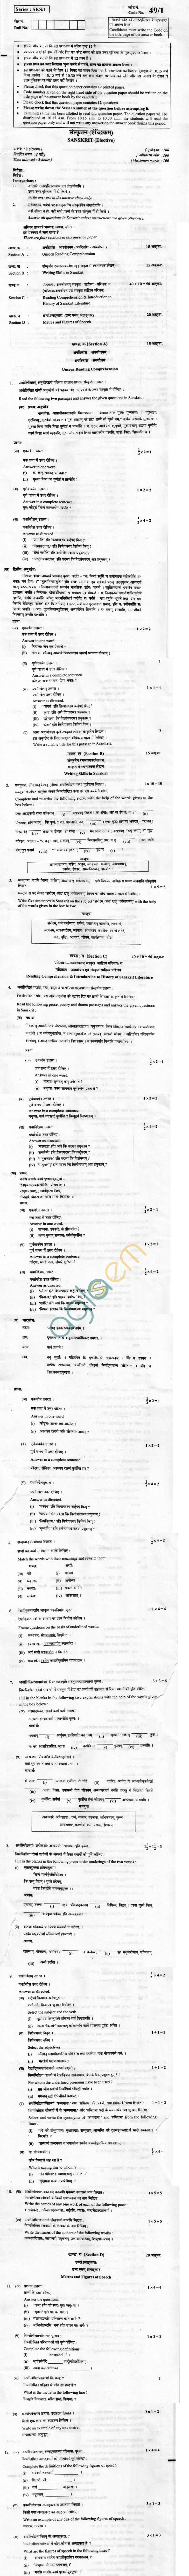 CBSE Board Exam 2013 Class XII Question Paper - Sanskrit (Elective)